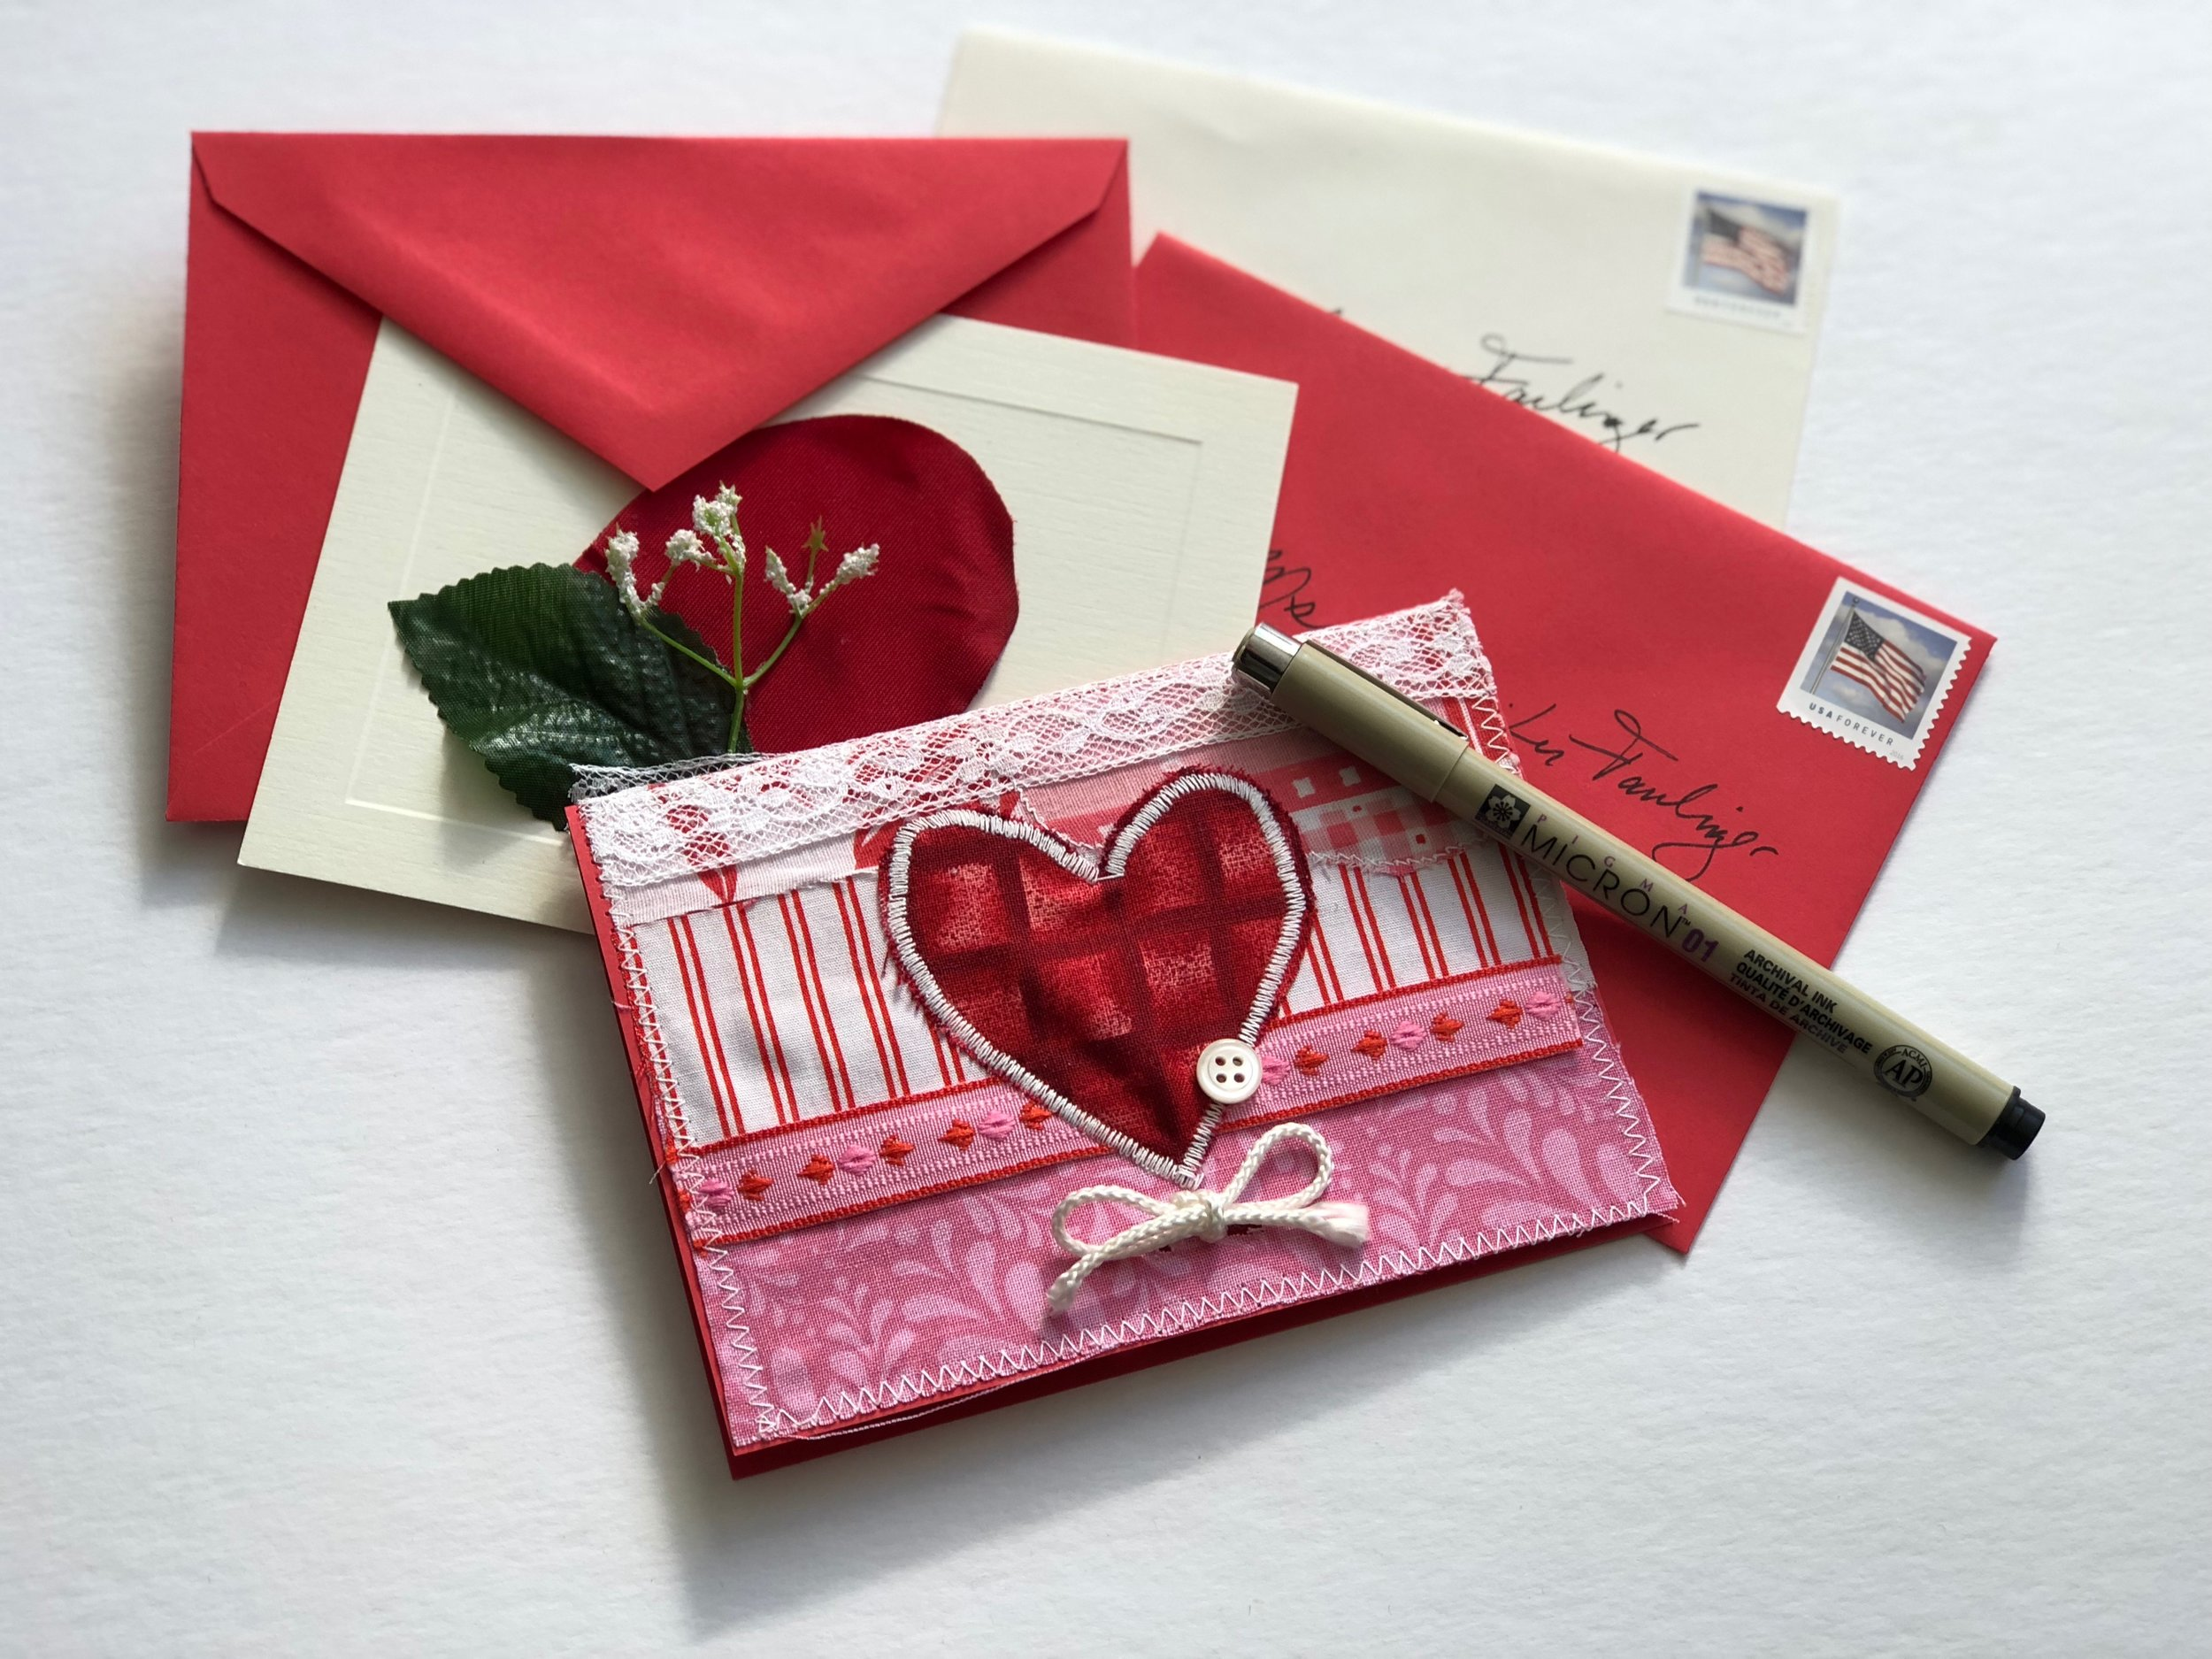 Handmade Valentine's Day cards with envelopes